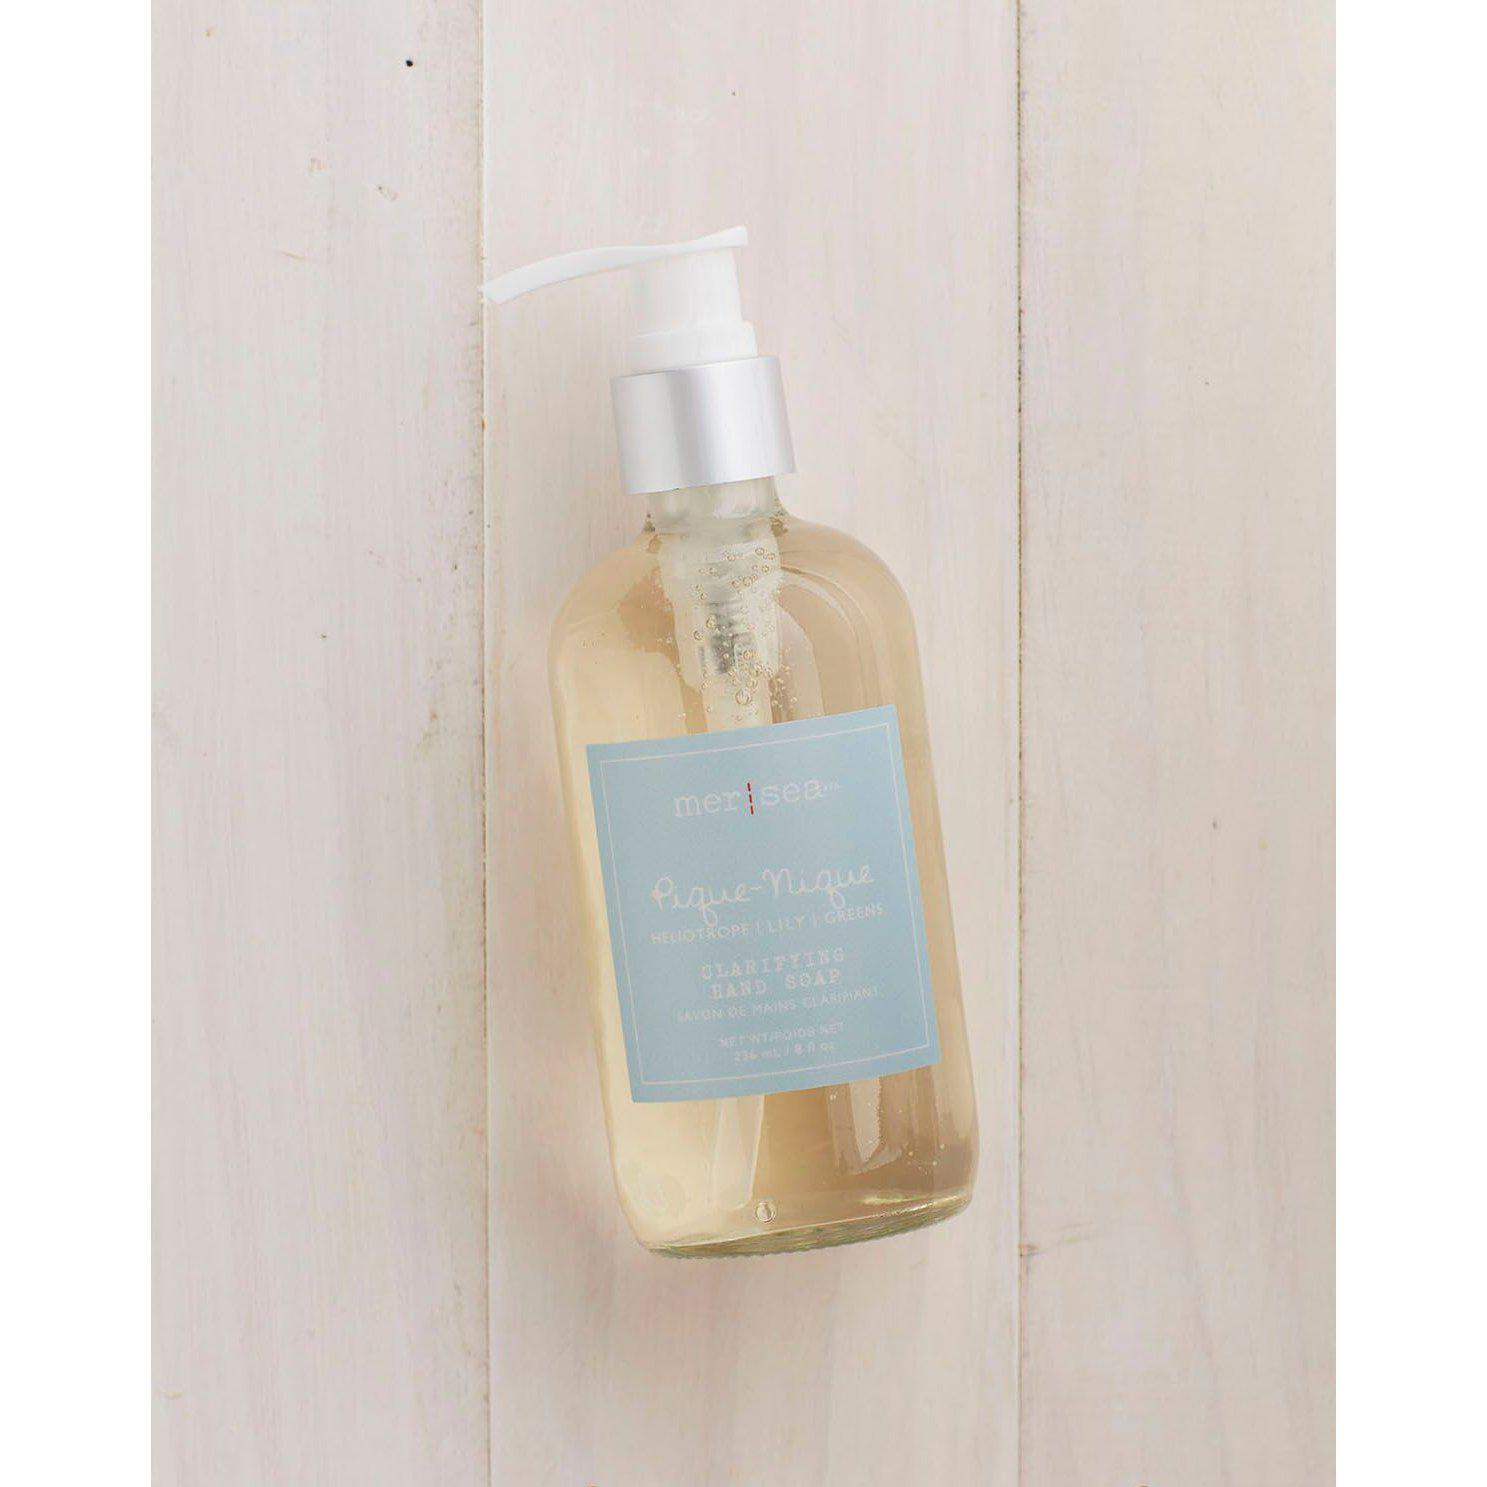 Pique-Nique Liquid Hand Soap-Sea Biscuit Del Mar